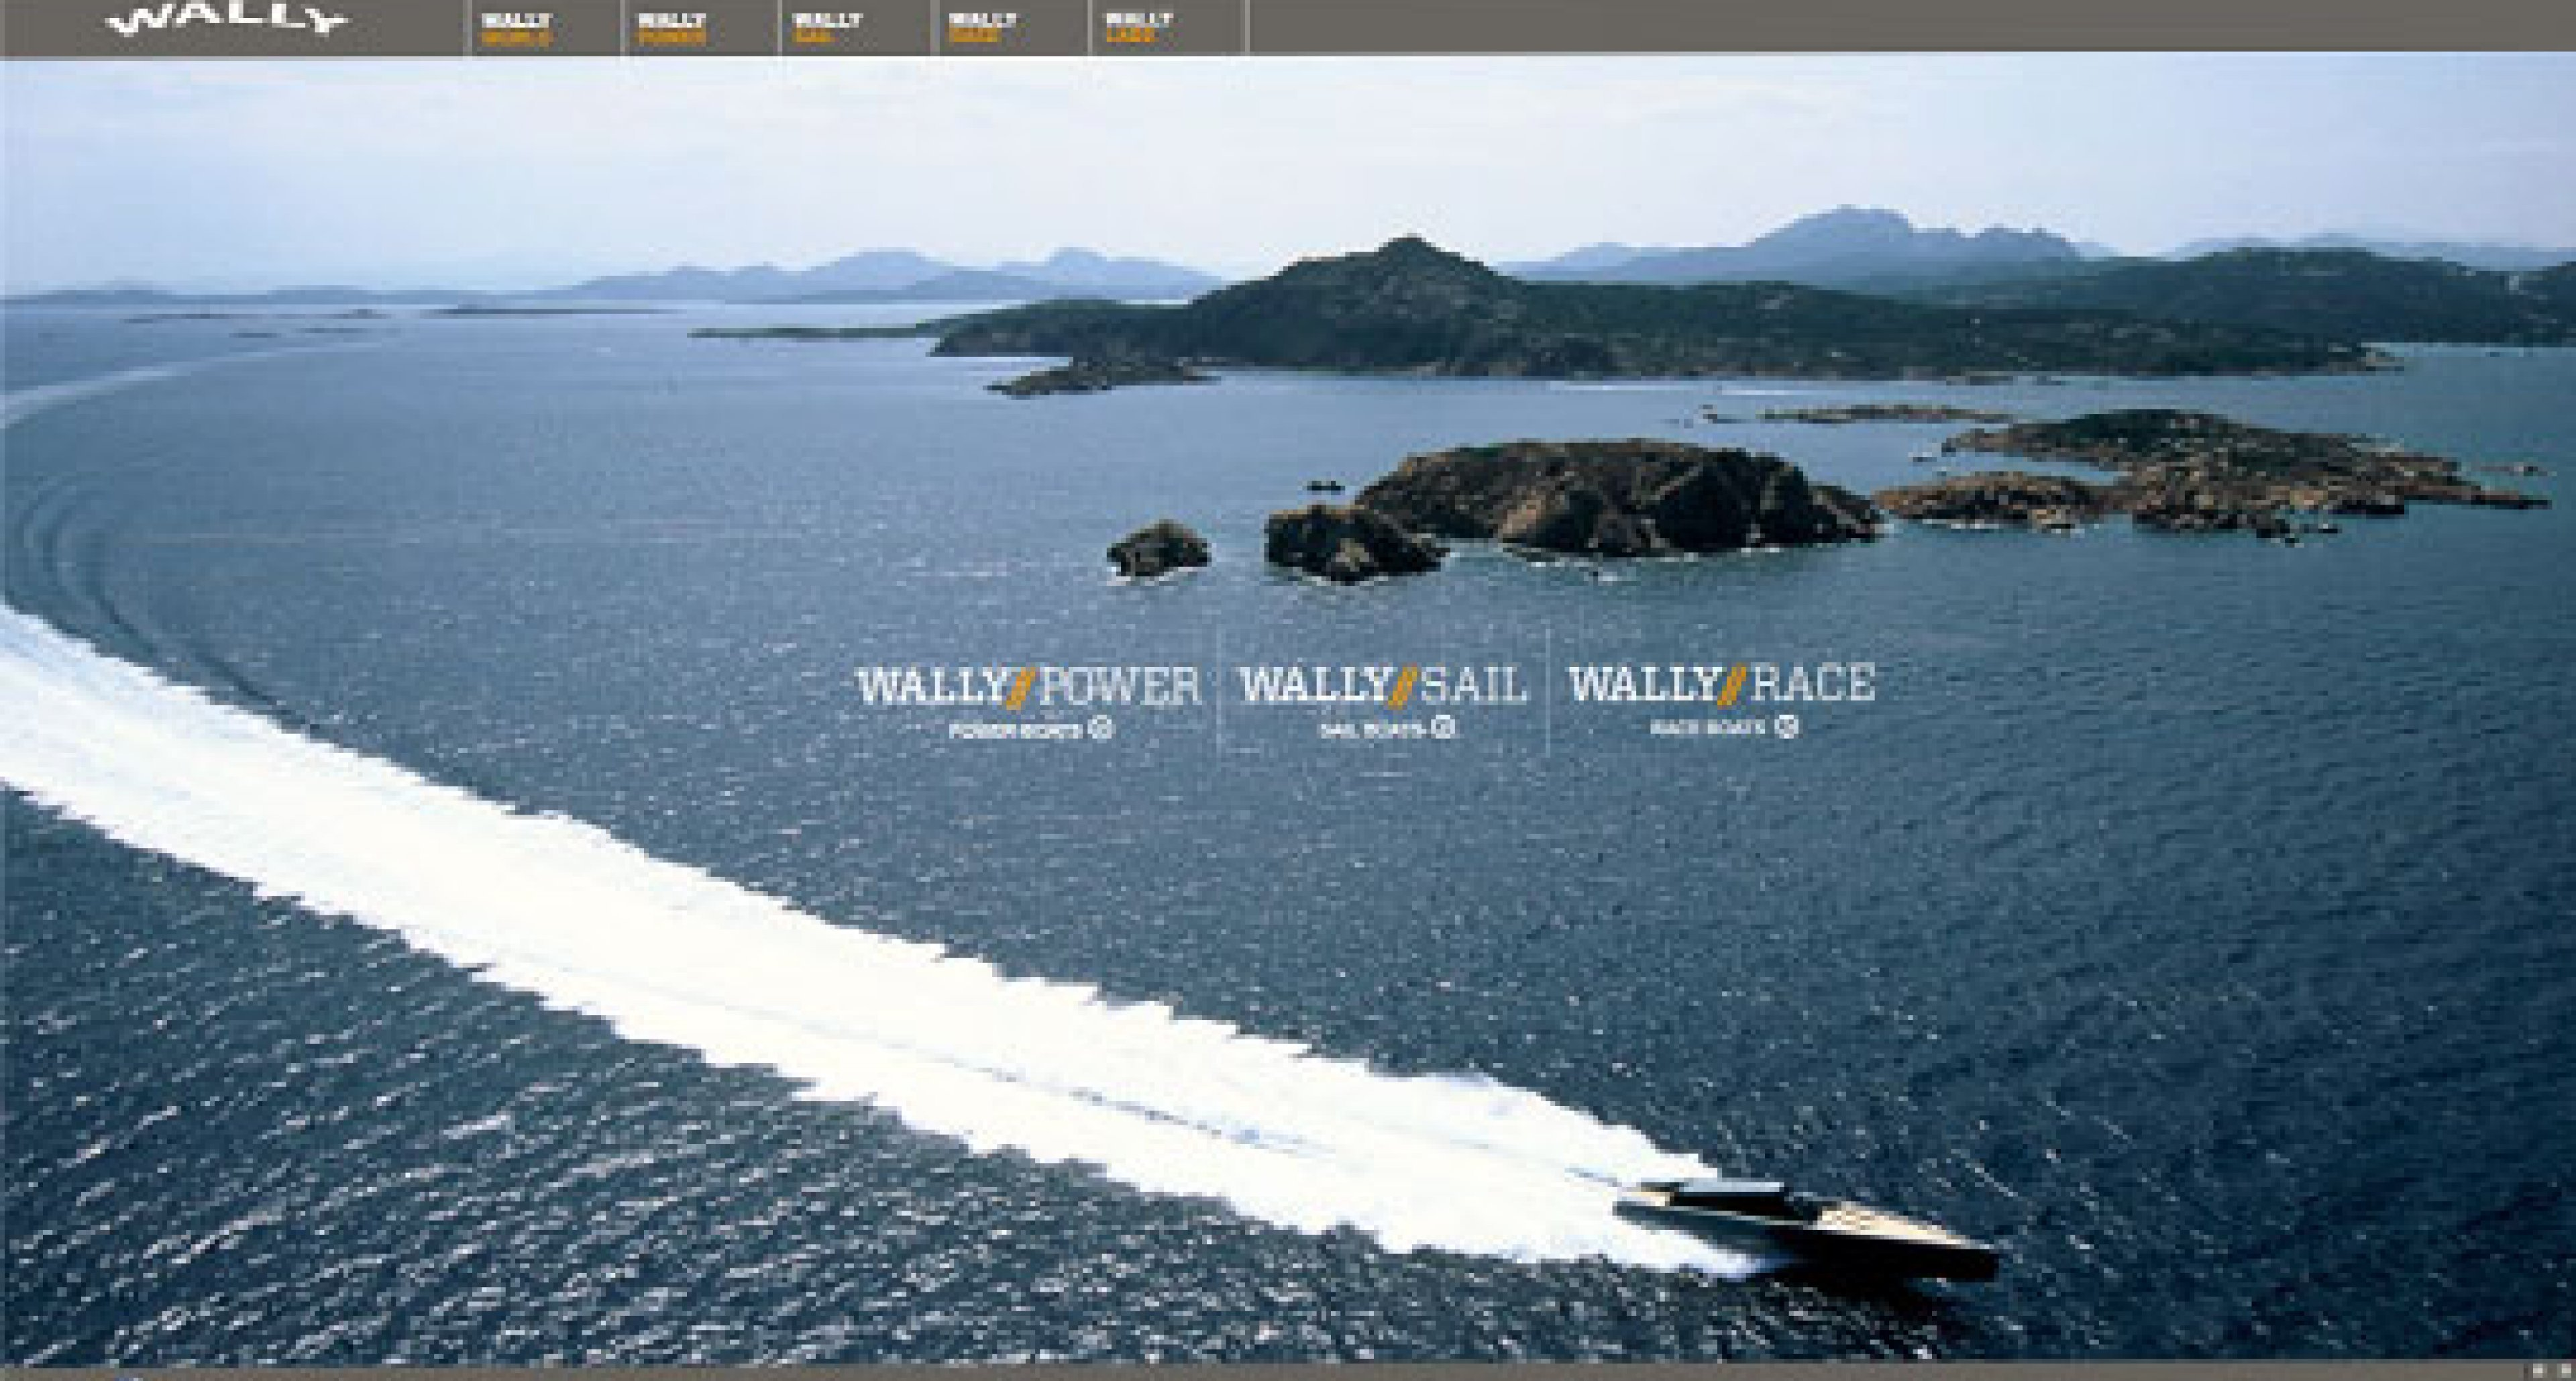 Wally sails across the net with new website